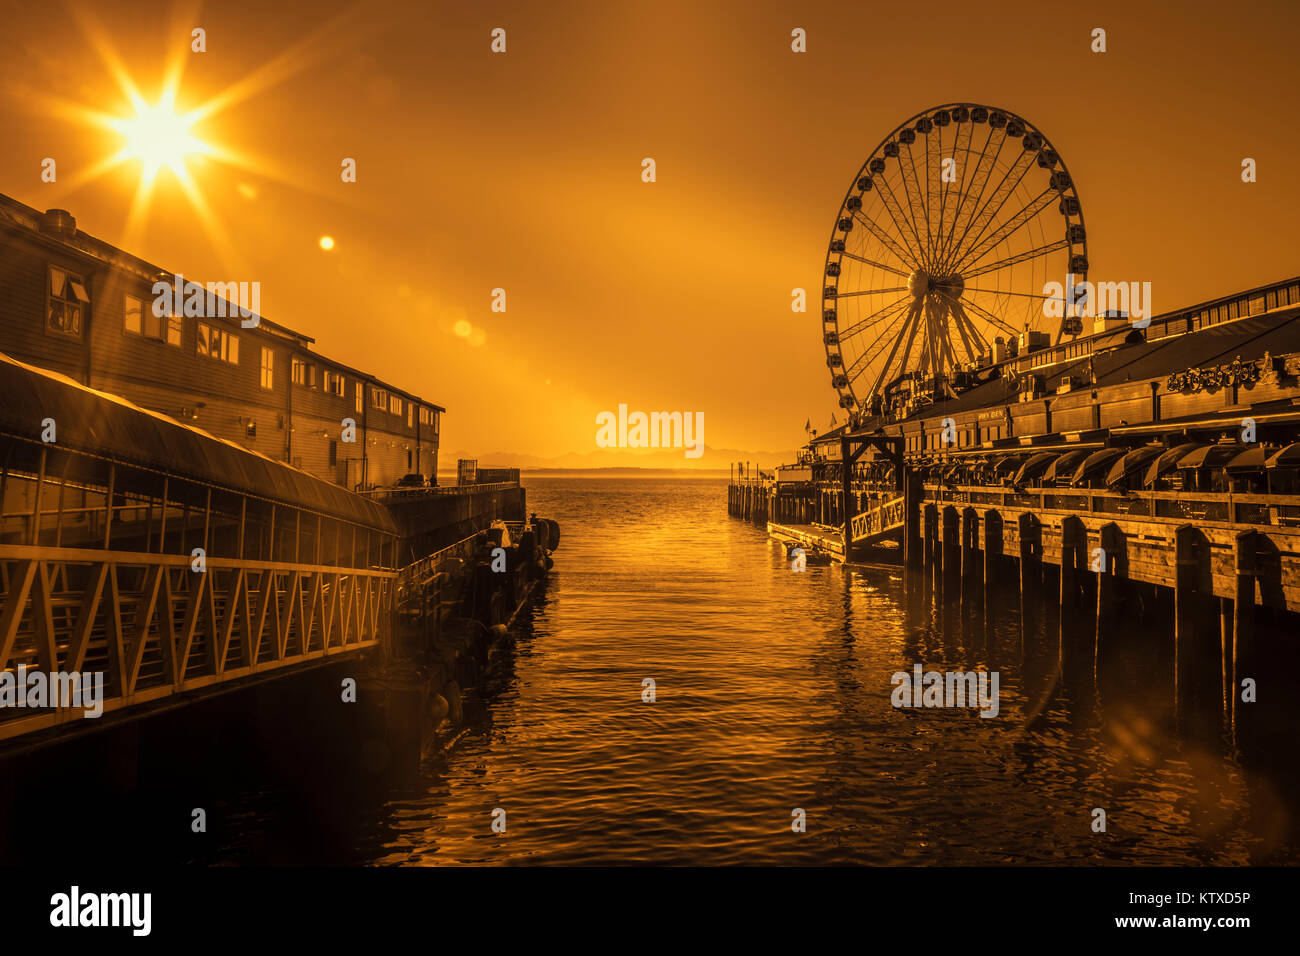 Seattle's Great Ferris Wheel at Pier 57, Seattle, Washington State, United States of America, North America - Stock Image